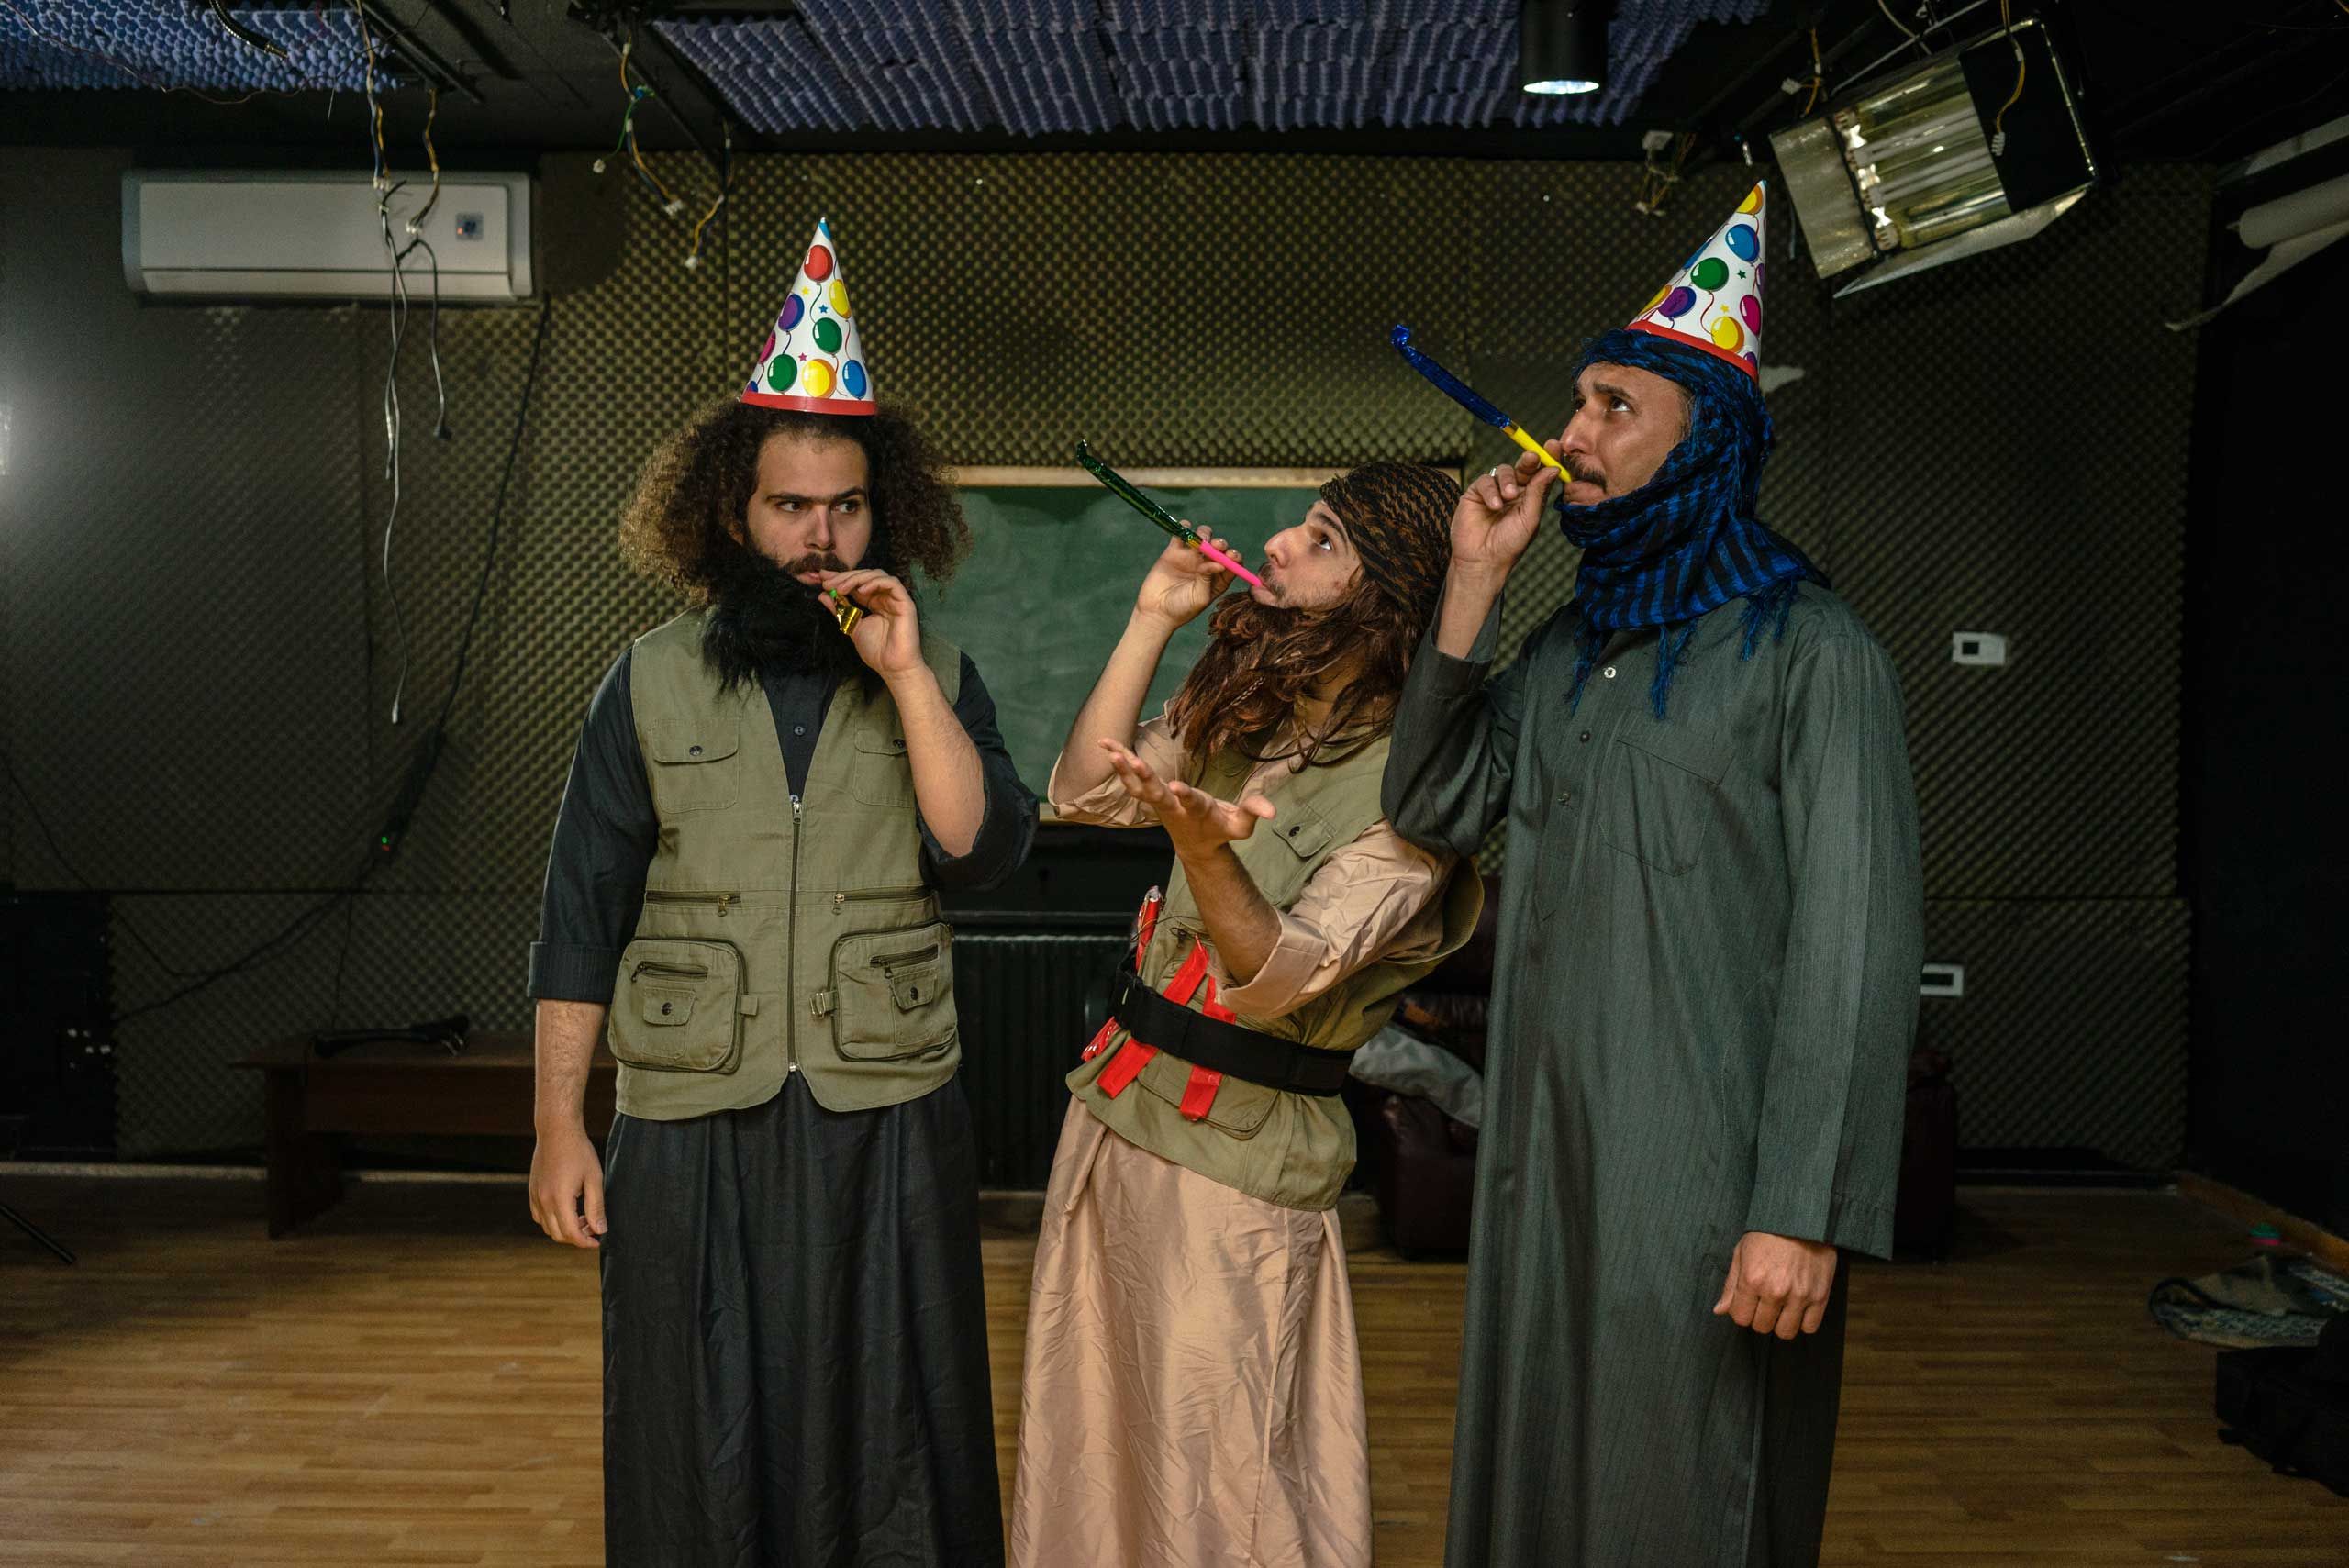 Three actors, Alhakam Turki, Shwan Sarheng and Mustafa Saedi, rehearse for a sketch on the set of the Al-Basheer Show in Amman